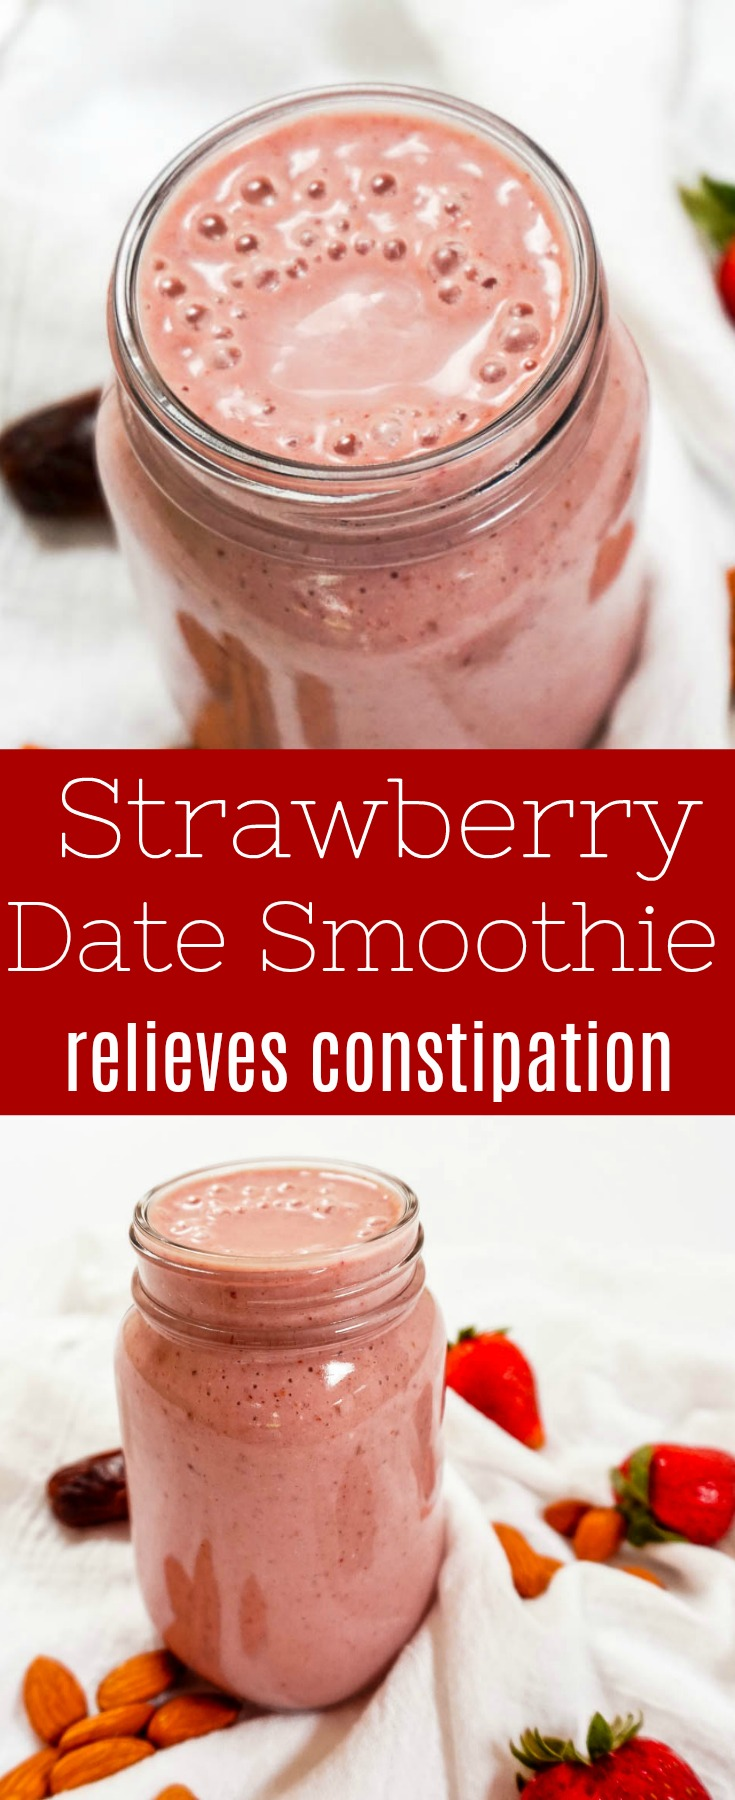 strawberry date smoothie